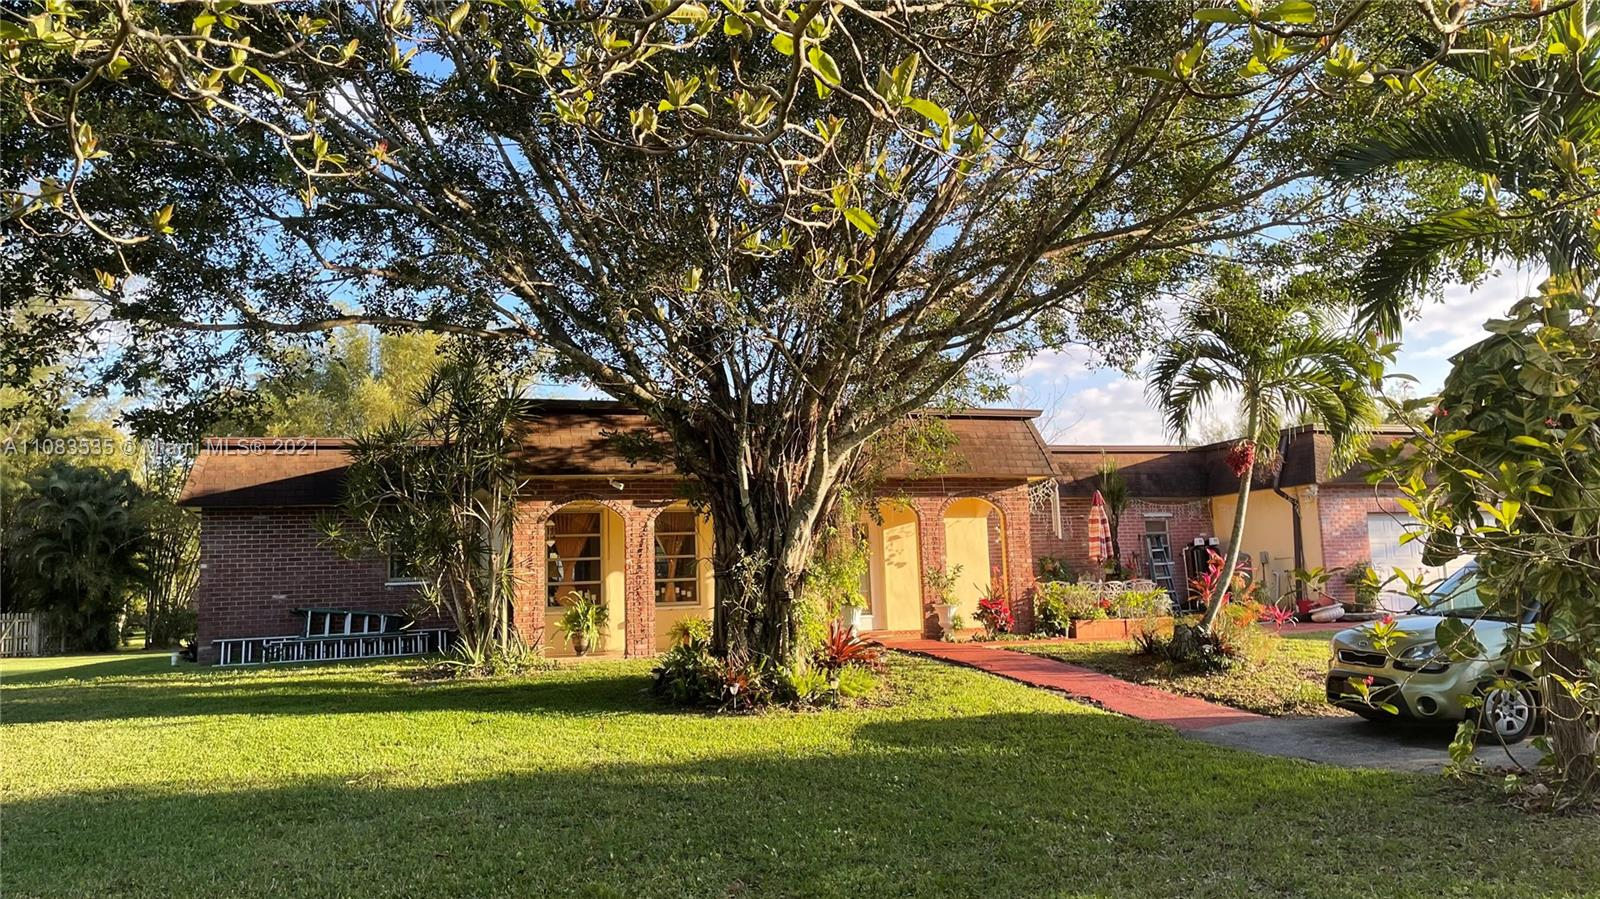 Sunshine Ranches, 4850 SW 128th Ave, Southwest Ranches, Florida 33330